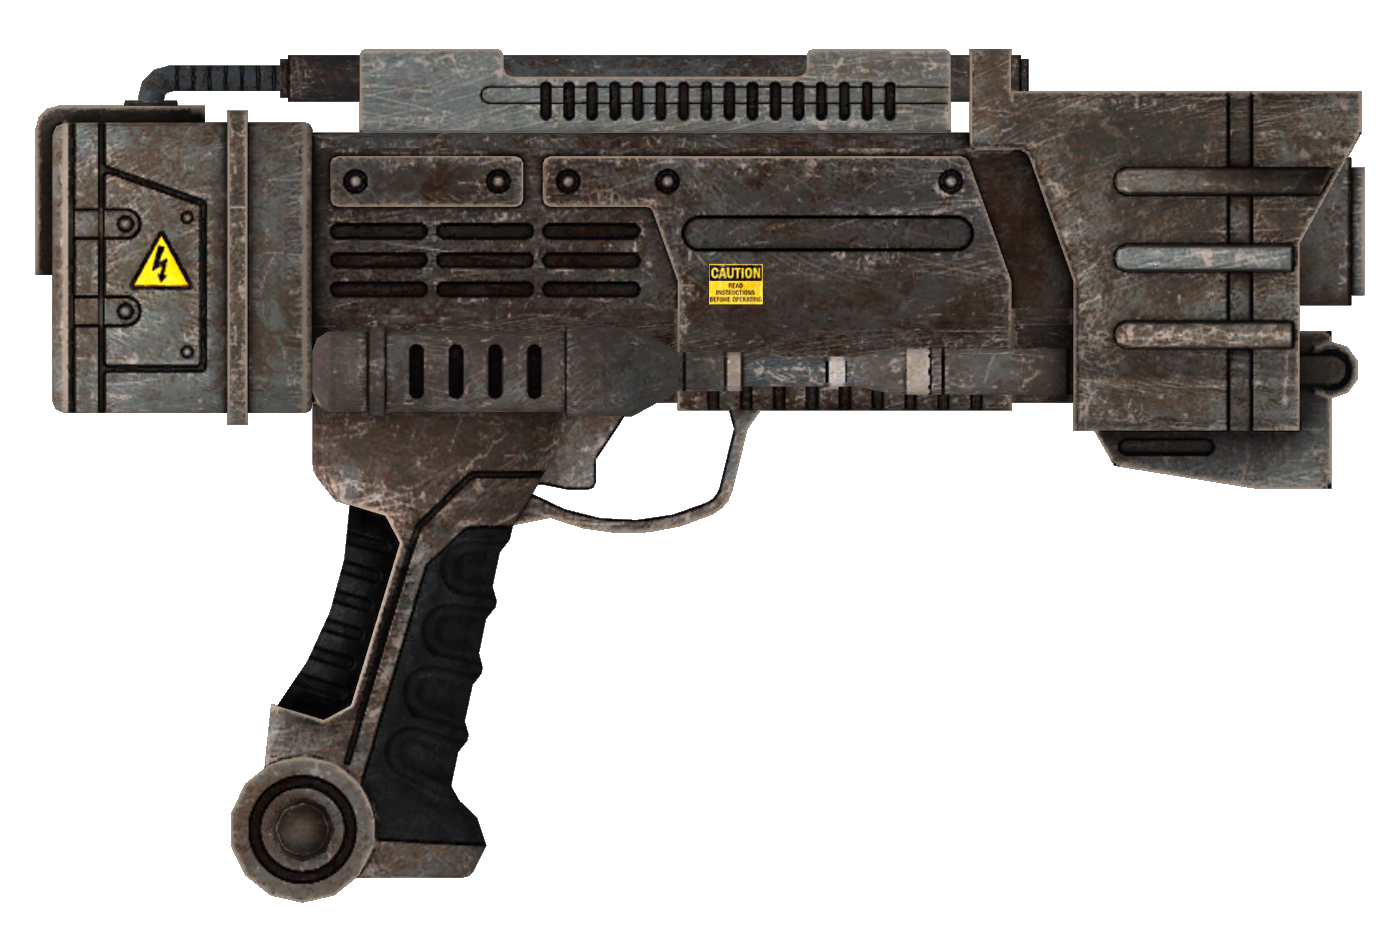 latest?cb=20110518015449 compliance regulator fallout wiki fandom powered by wikia fallout new vegas electric box fuse at gsmx.co